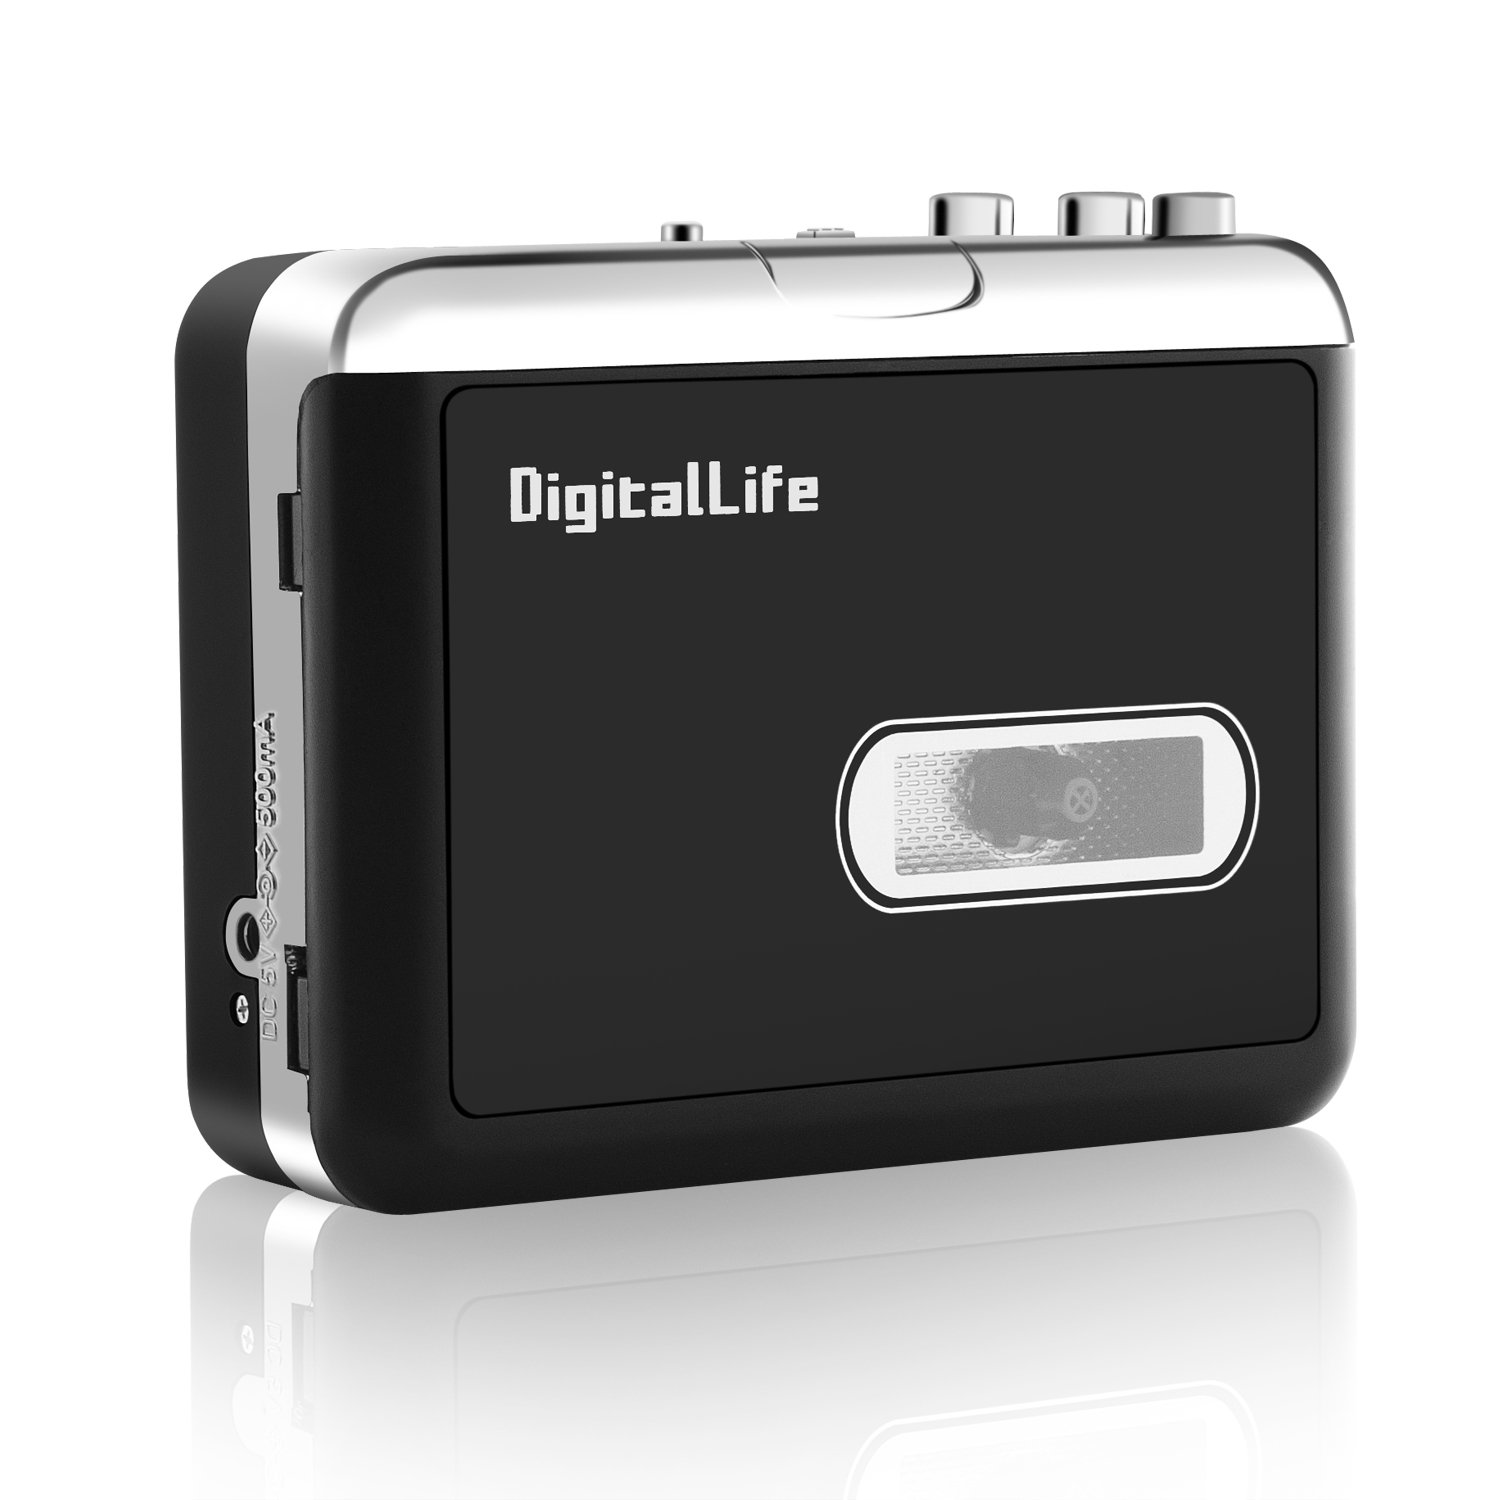 USB Flash Drive Not Included Retro Cassette Player Convert Walkman Tape Cassette to MP3 Format Compatible with Laptop and PC Portable Tape Player Capture MP3 Audio Music via USB